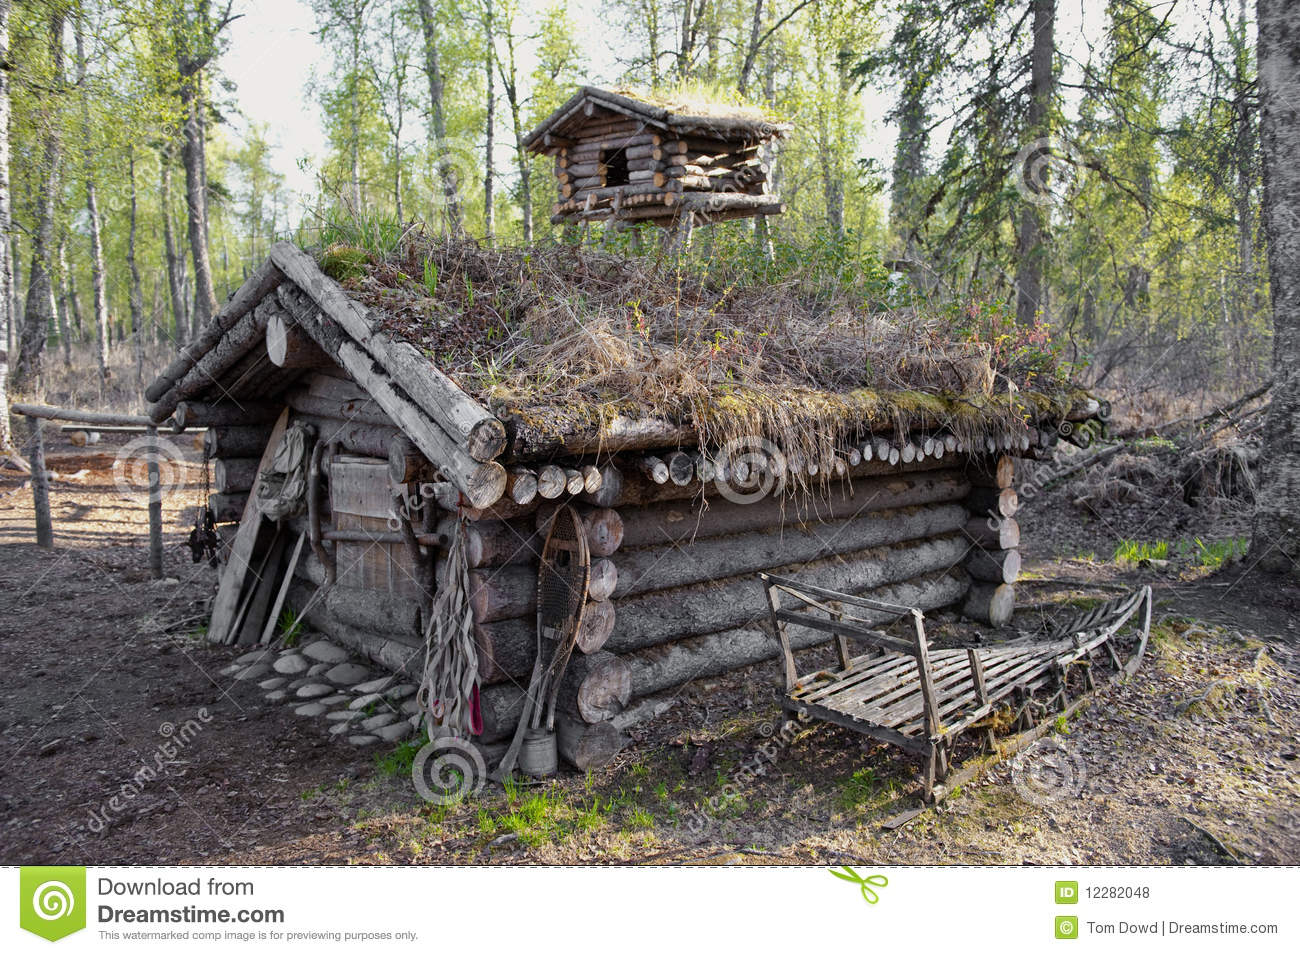 ... hunting cabin in forest with dog sled in foreground, Alaska, U.S.A